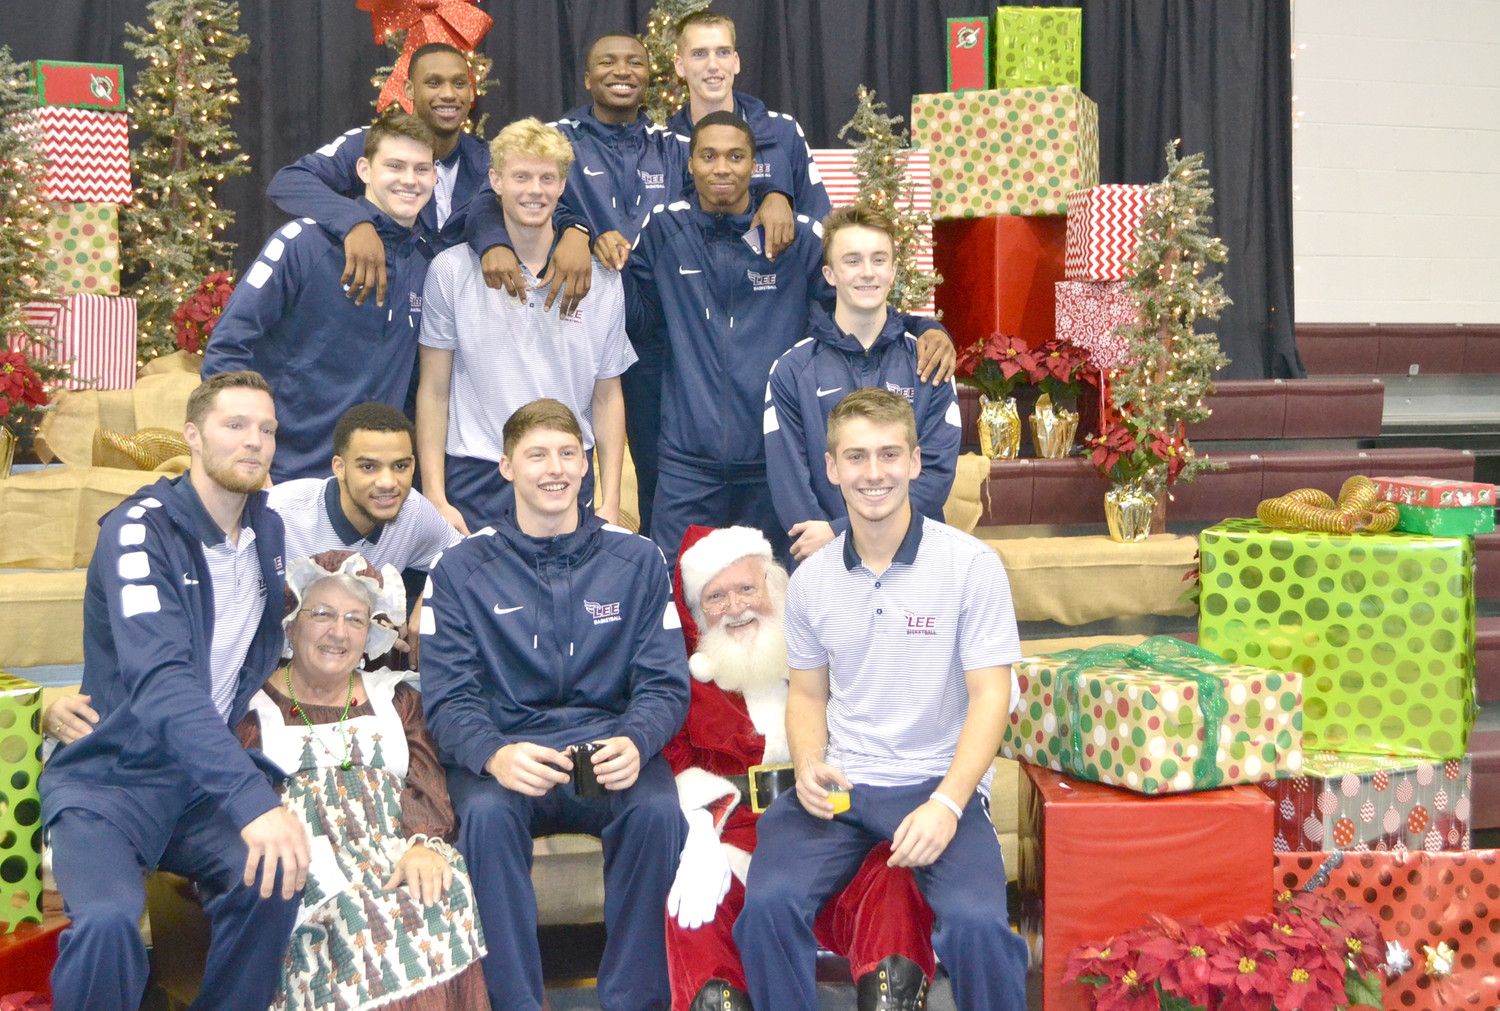 THE LEE UNIVERSITY men's basketball team posed for a team show with Santa Claus and Mrs. Claus, at Monday's Operation Christmas Child shoebox packing.